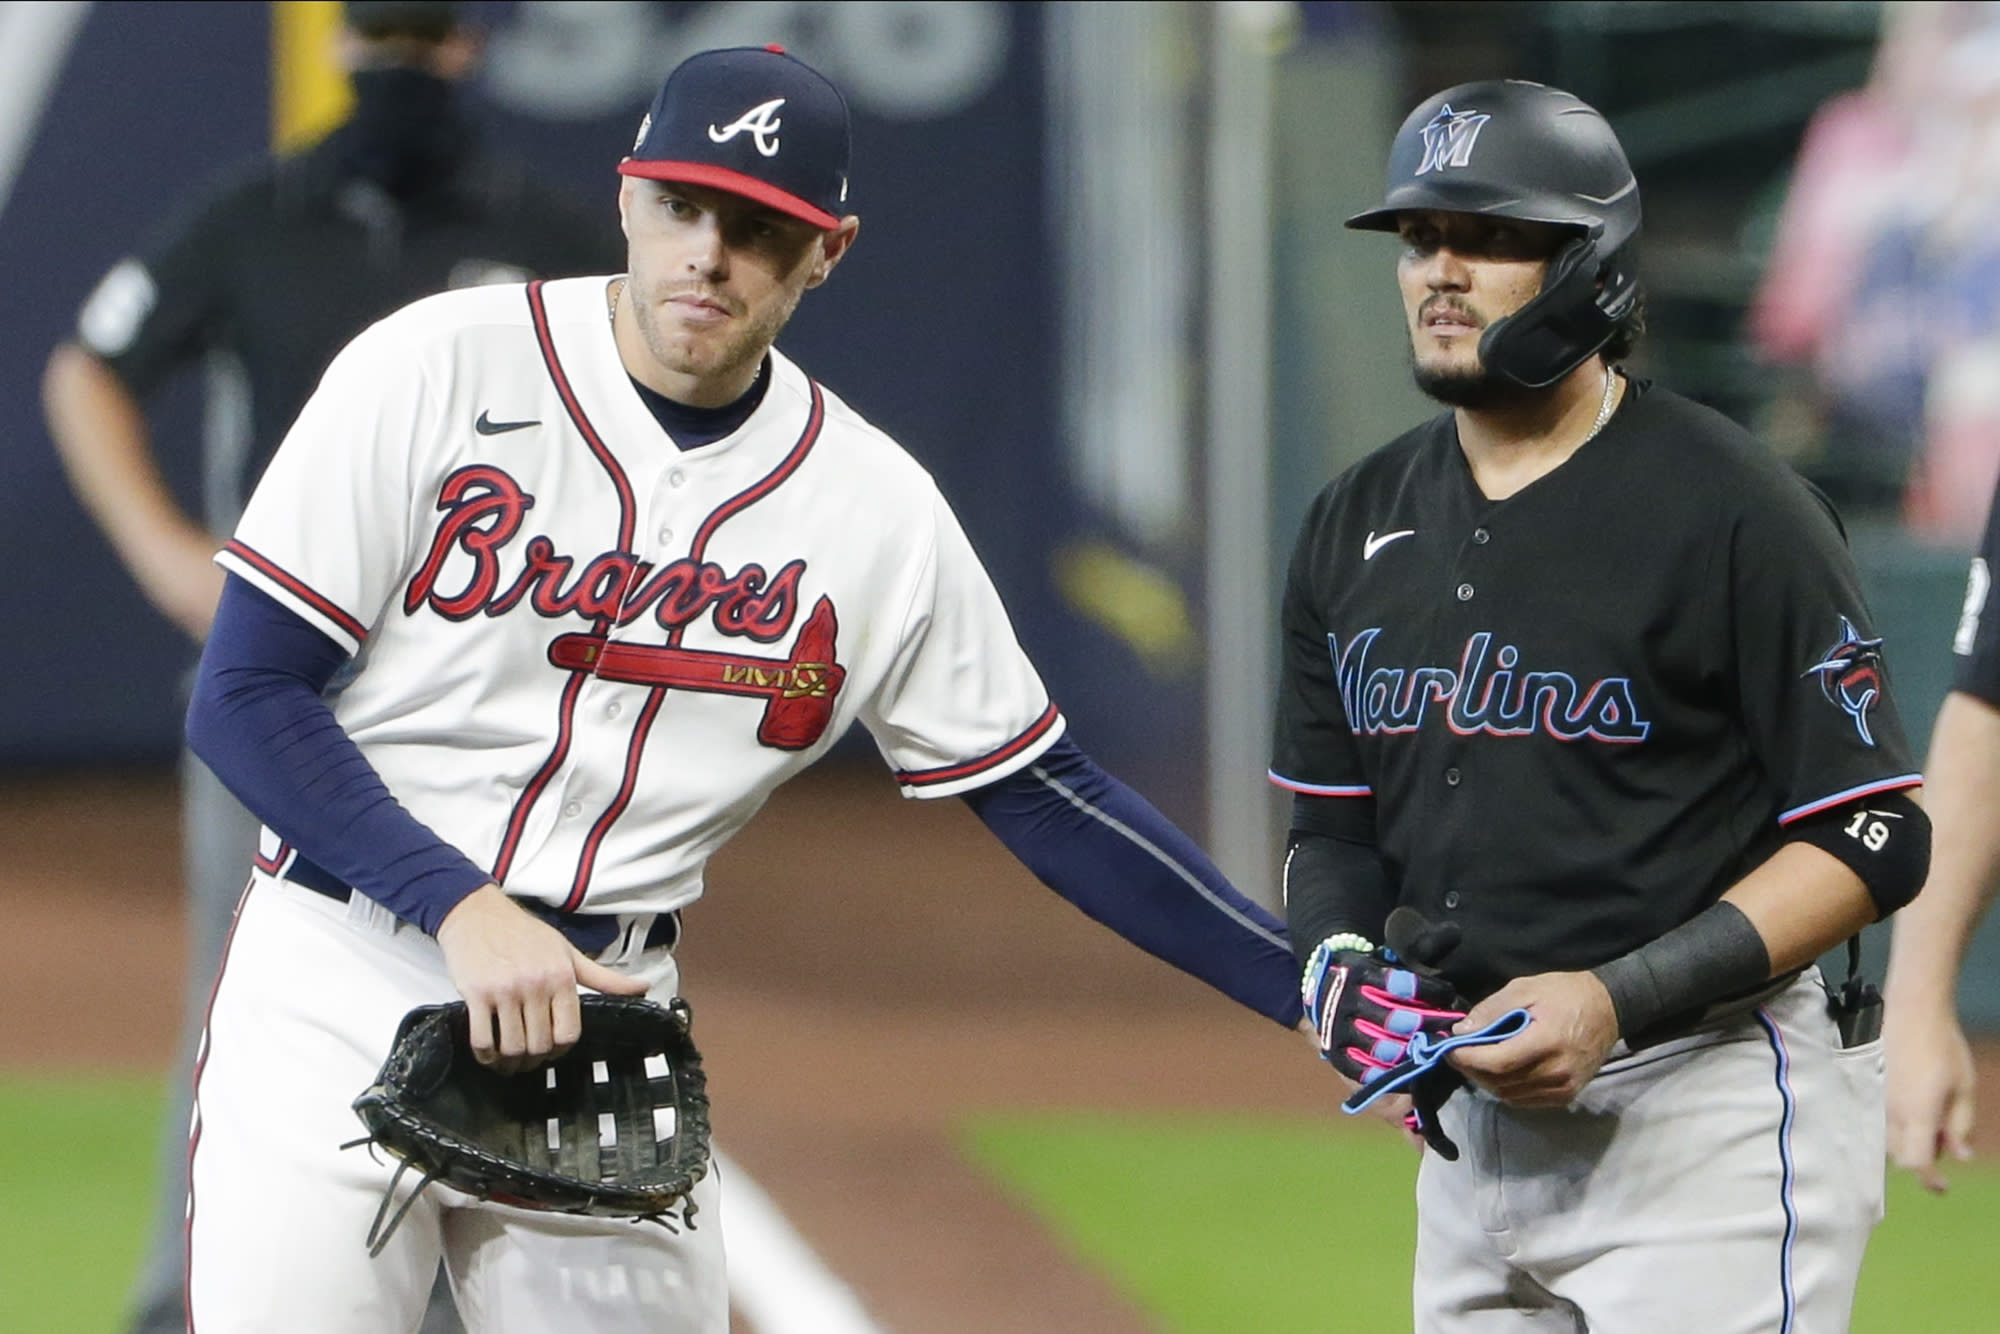 Atlanta Braves first baseman Freddie Freeman, left, taps Miami Marlins' Miguel Rojas, right, on the hip after Rojas was hit by a pitch during the eighth inning in Game 1 of a baseball National League Division Series Tuesday, Oct. 6, 2020, in Houston. The Braves won 9-5. (AP Photo/Michael Wyke)